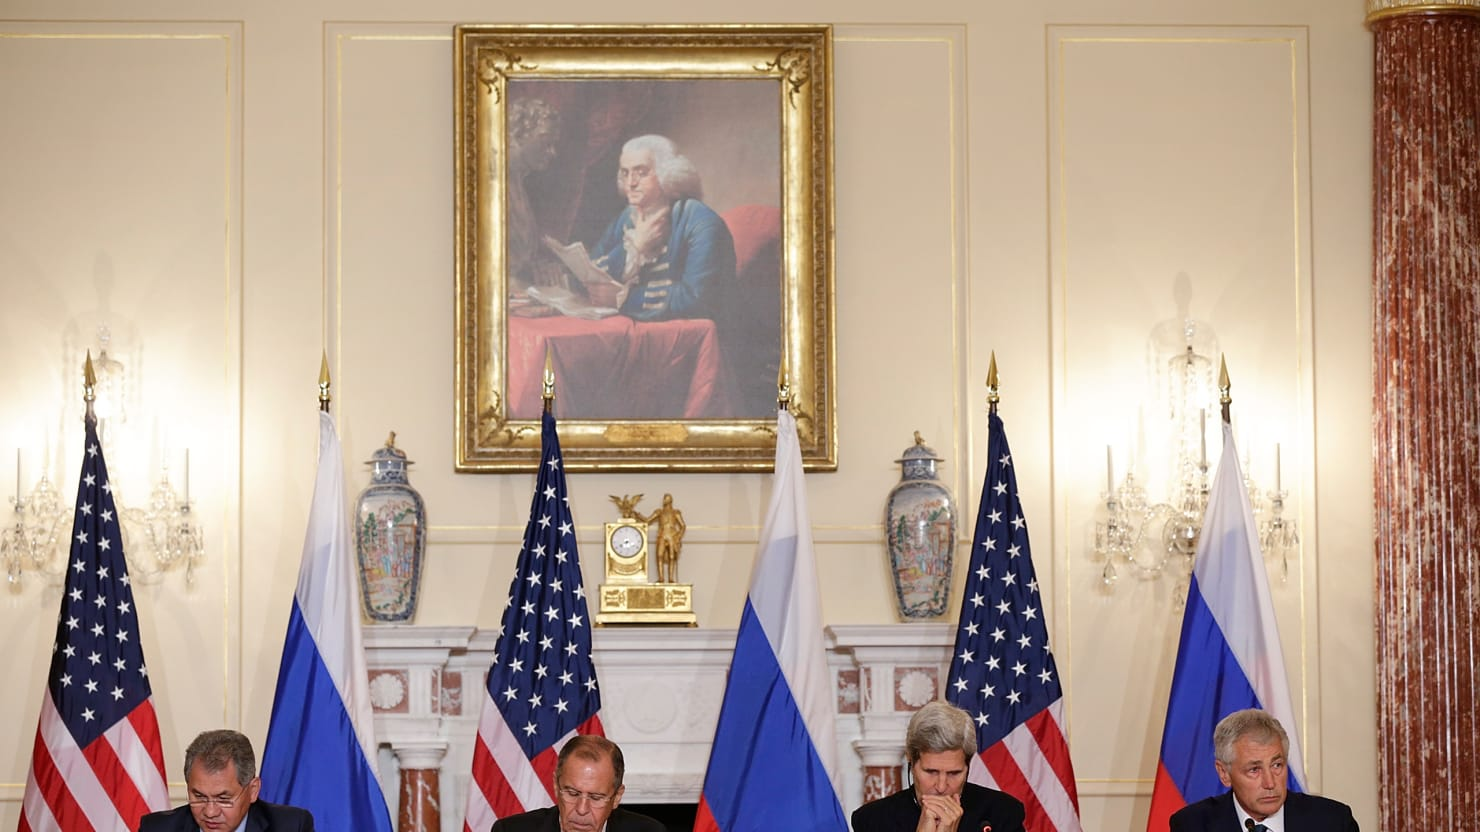 Snowden Who? U.S. and Russian Officials Say NSA Leaker Not Part of '2+2' Meetings